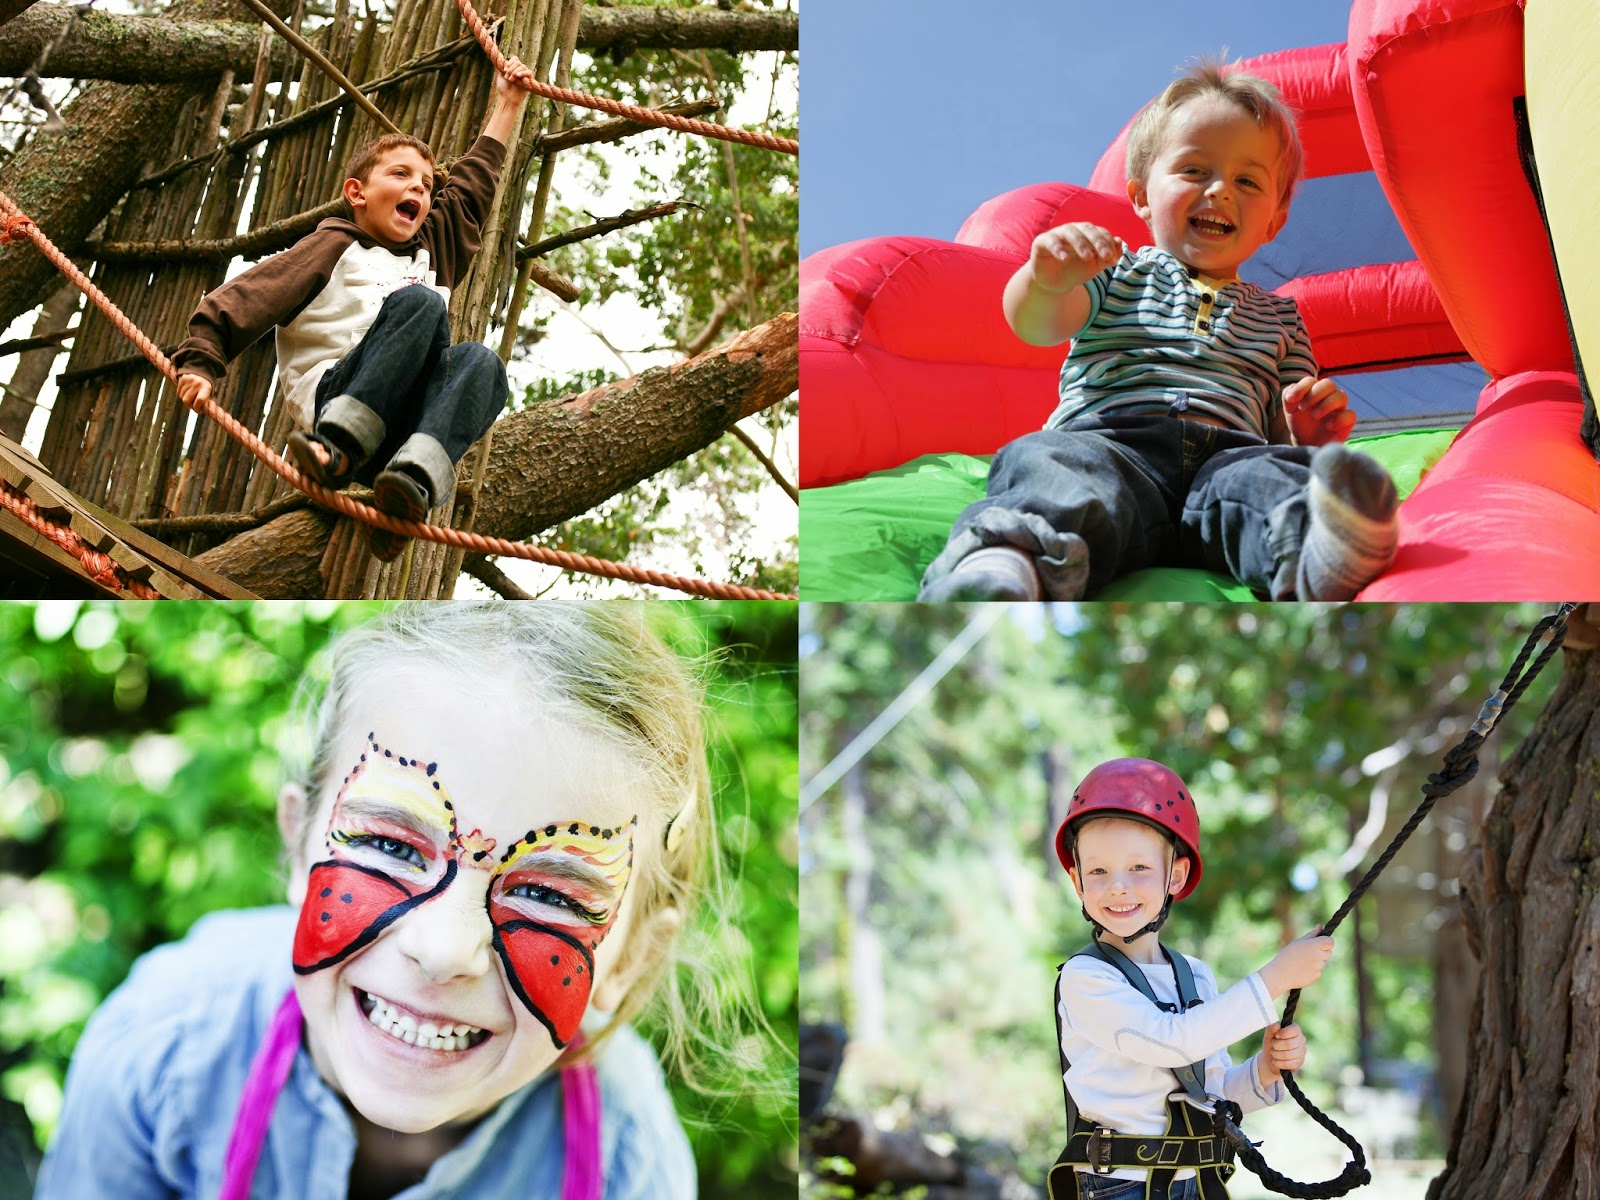 Activities at Geronimo Festival at Tatton Park in May 2015